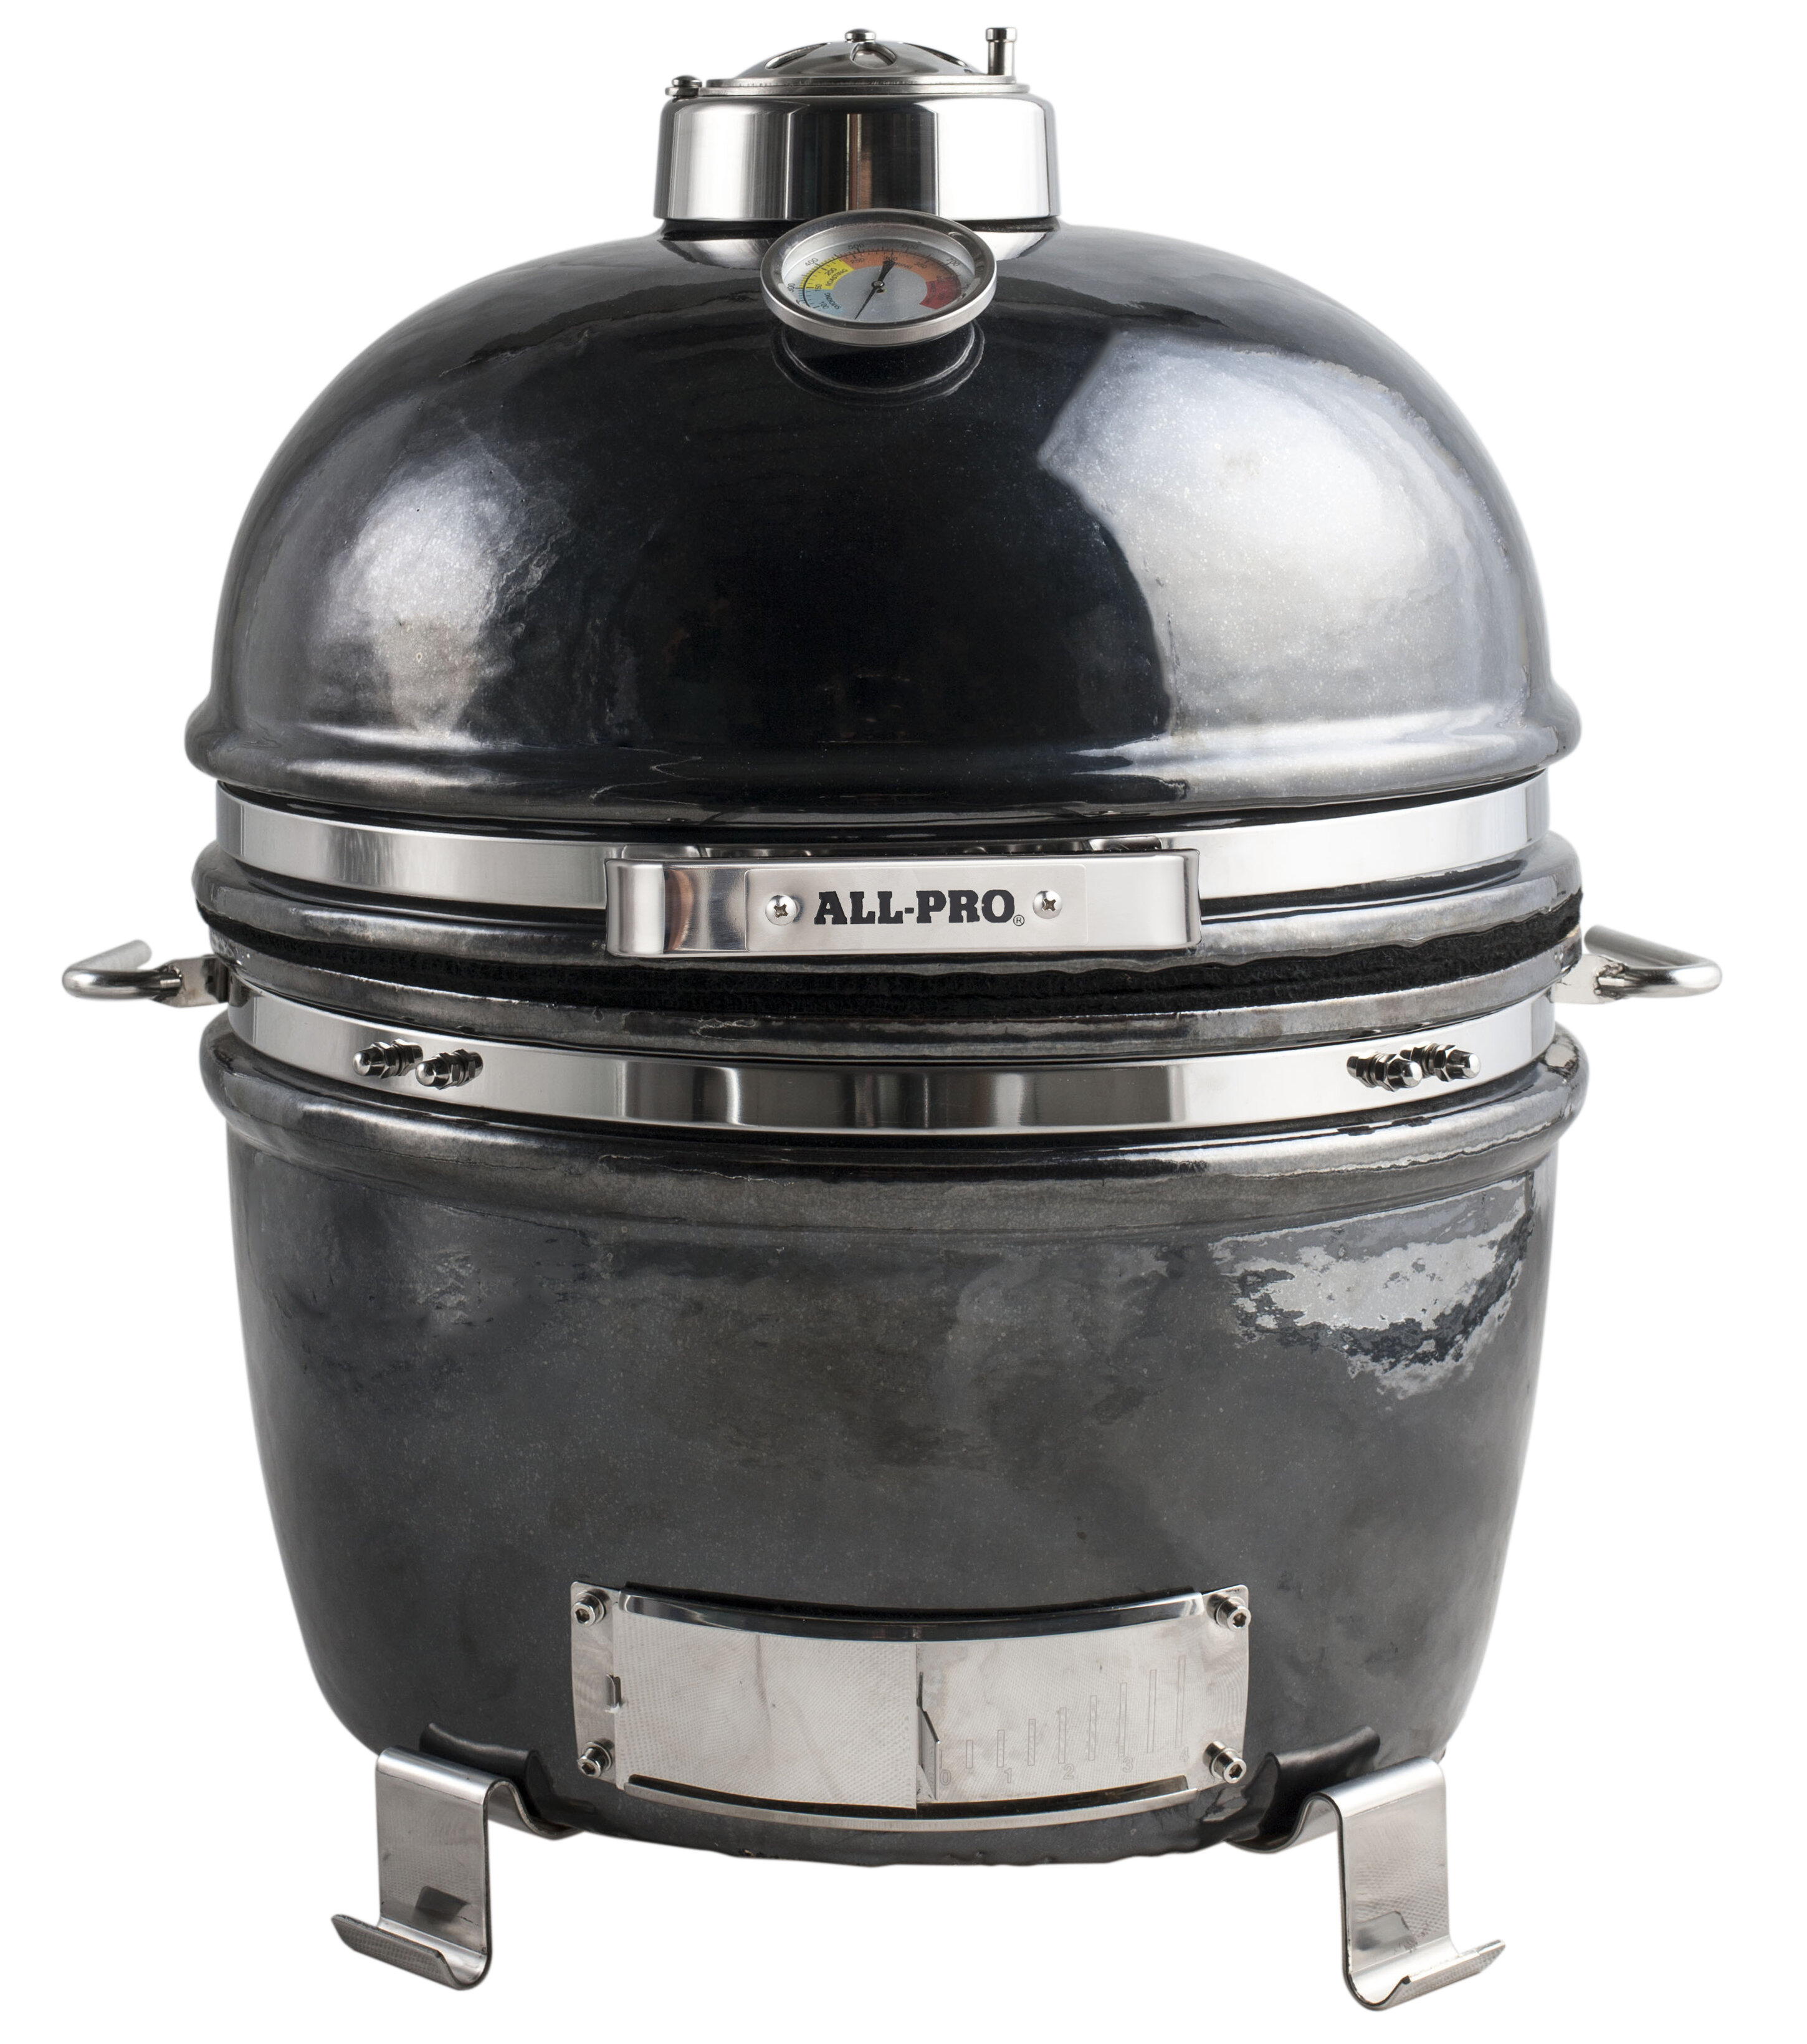 """Backyard Charcoal Grill all-pro 11"""" convenience series backyard cooker charcoal grill 